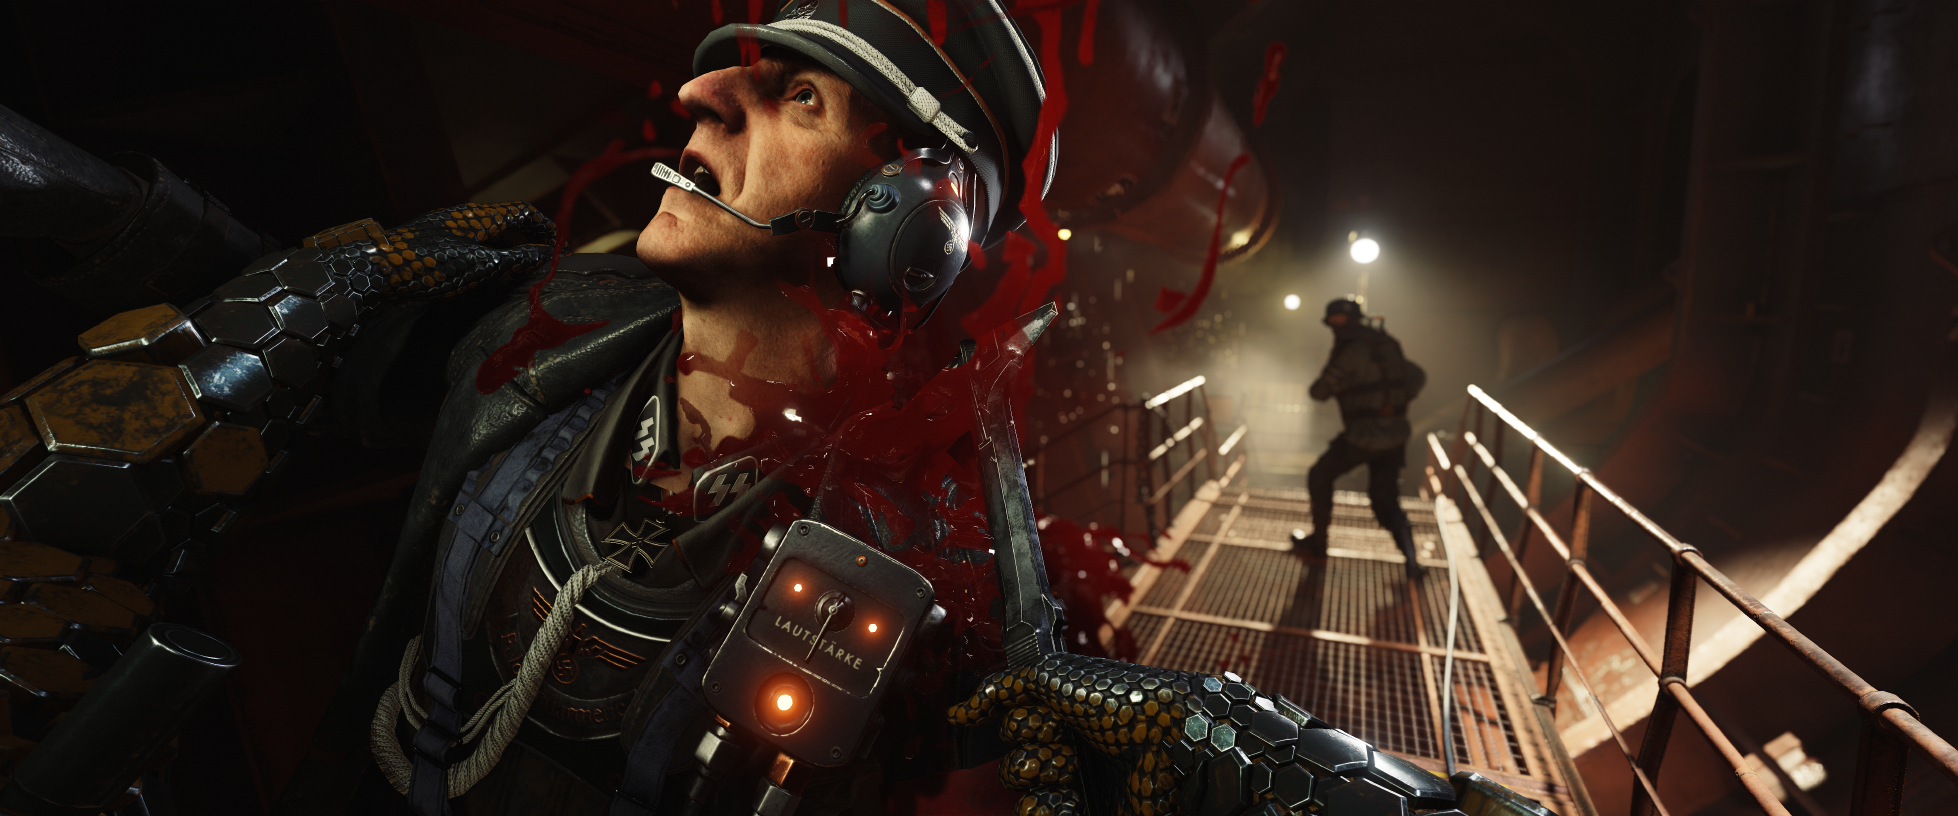 Руководство по врагам в Wolfenstein 2: The New Colossus